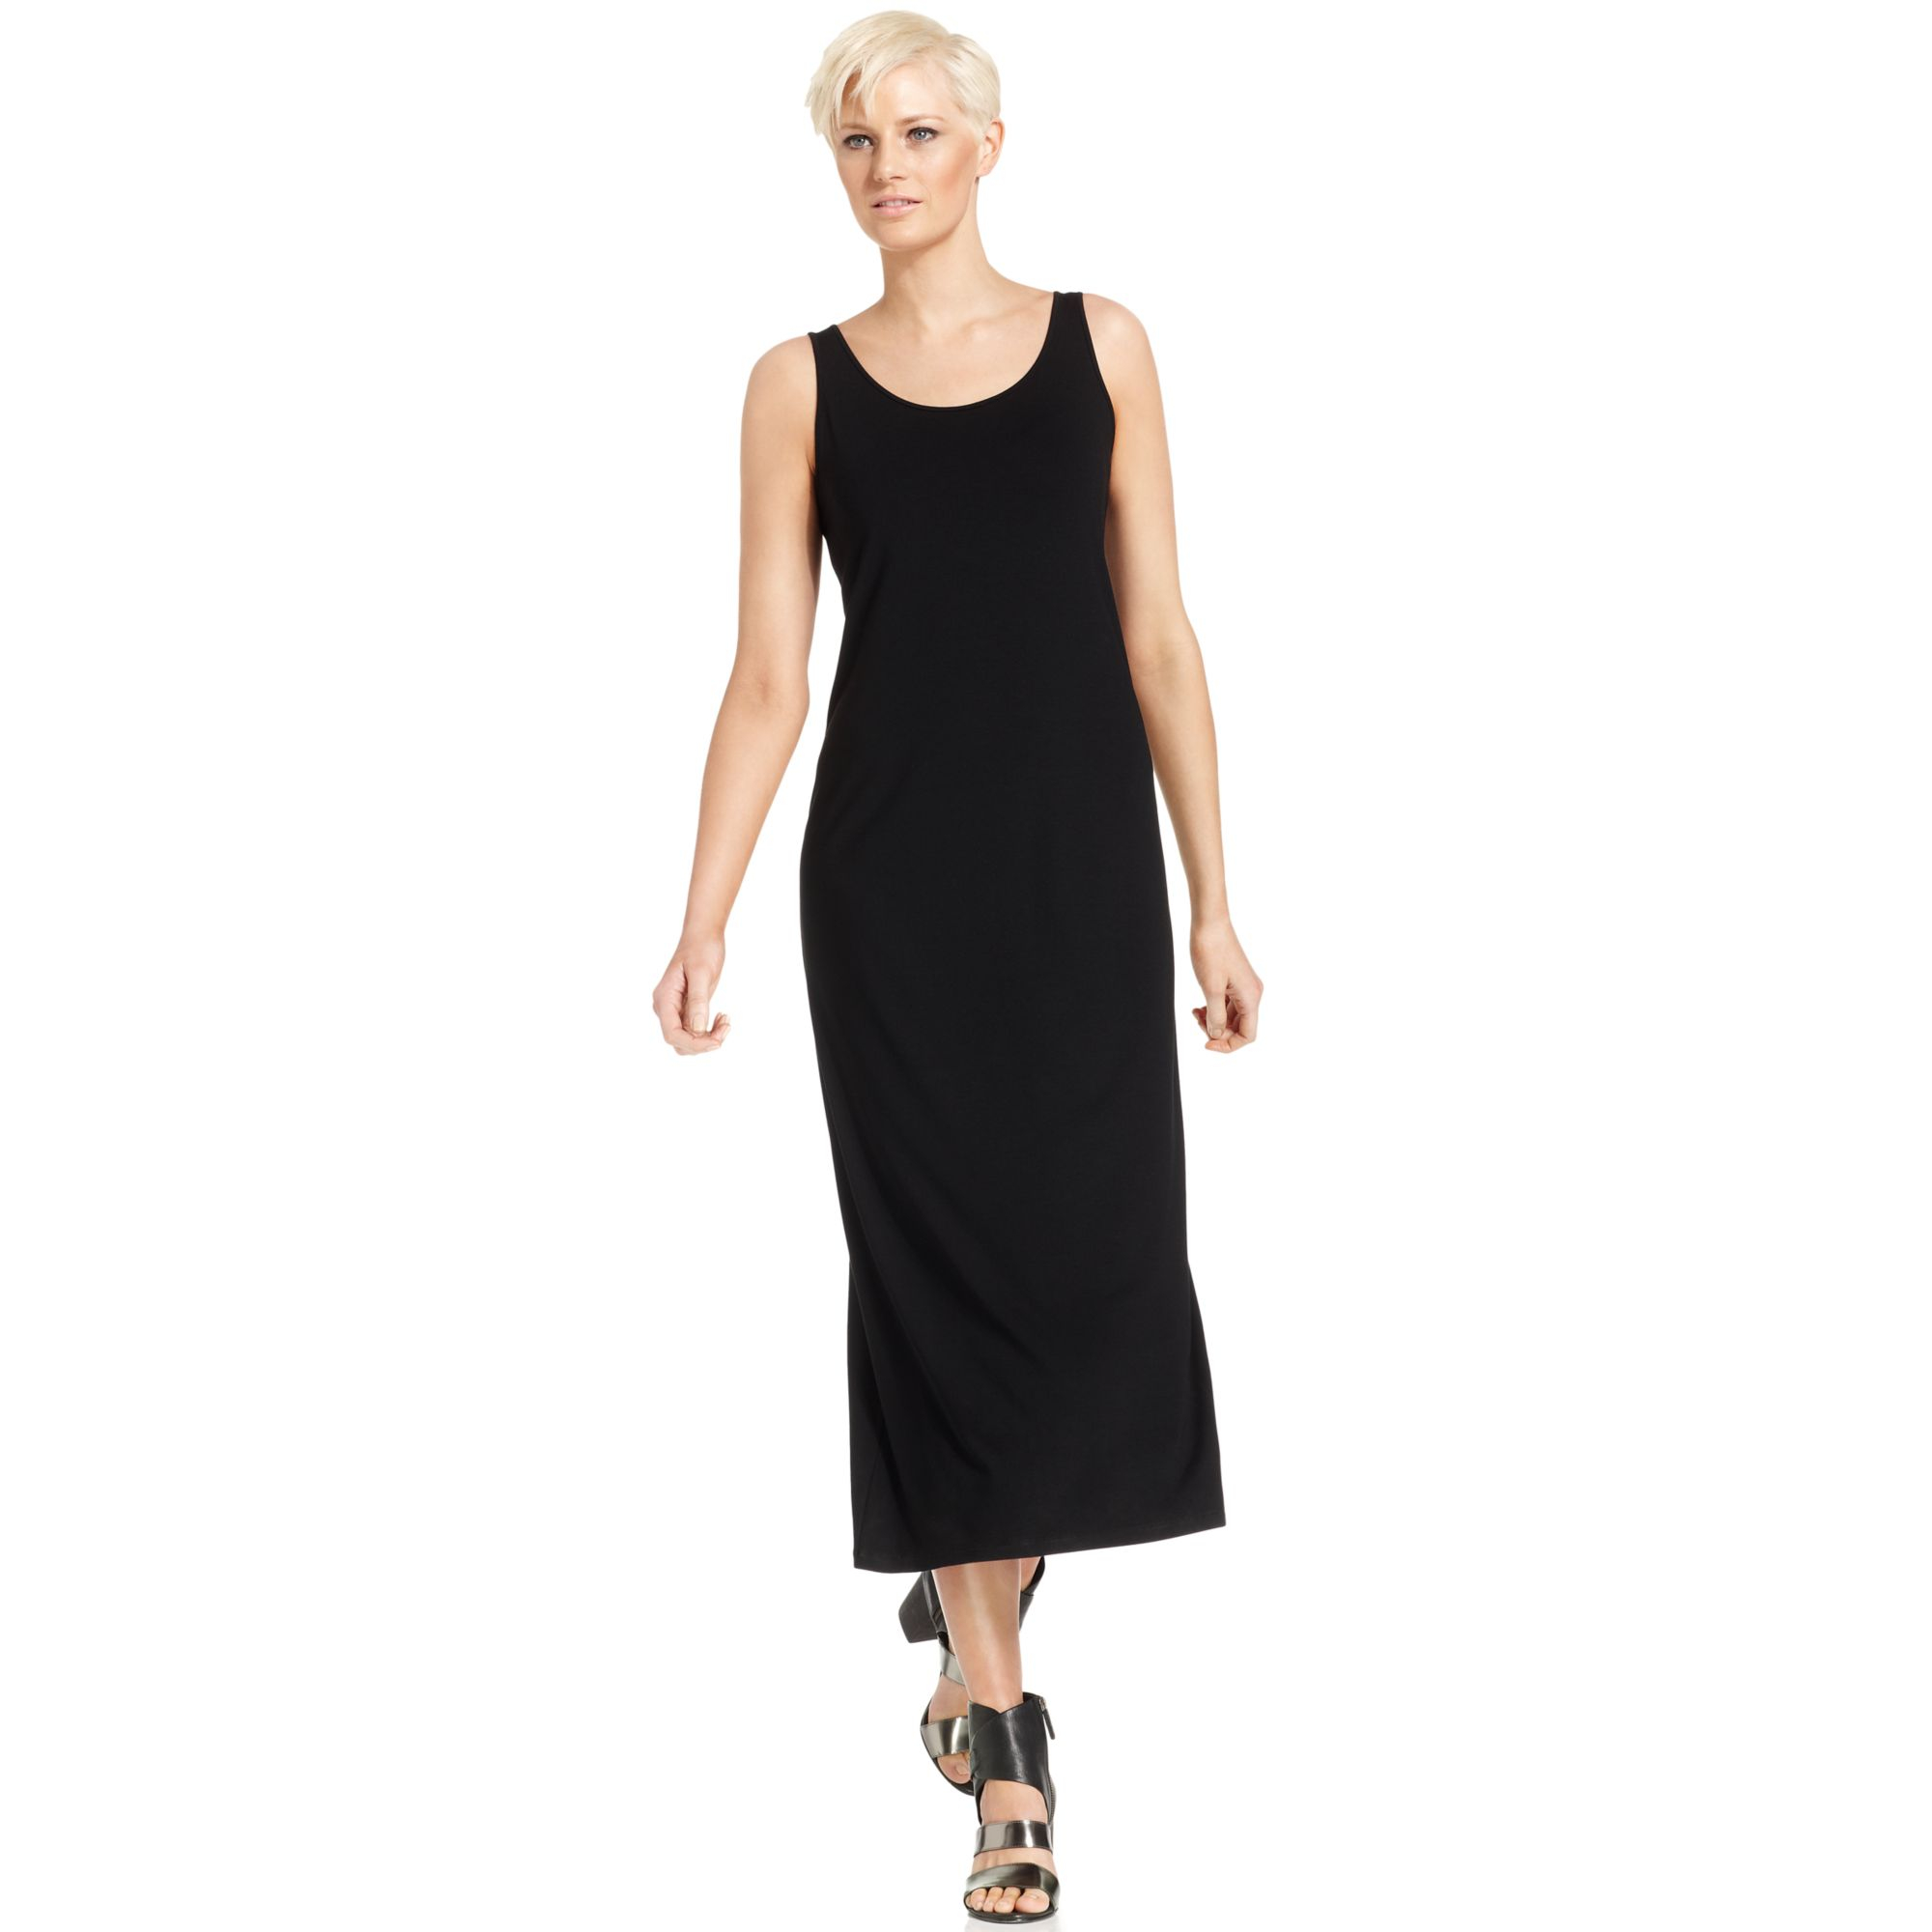 Eileen fisher black maxi dress